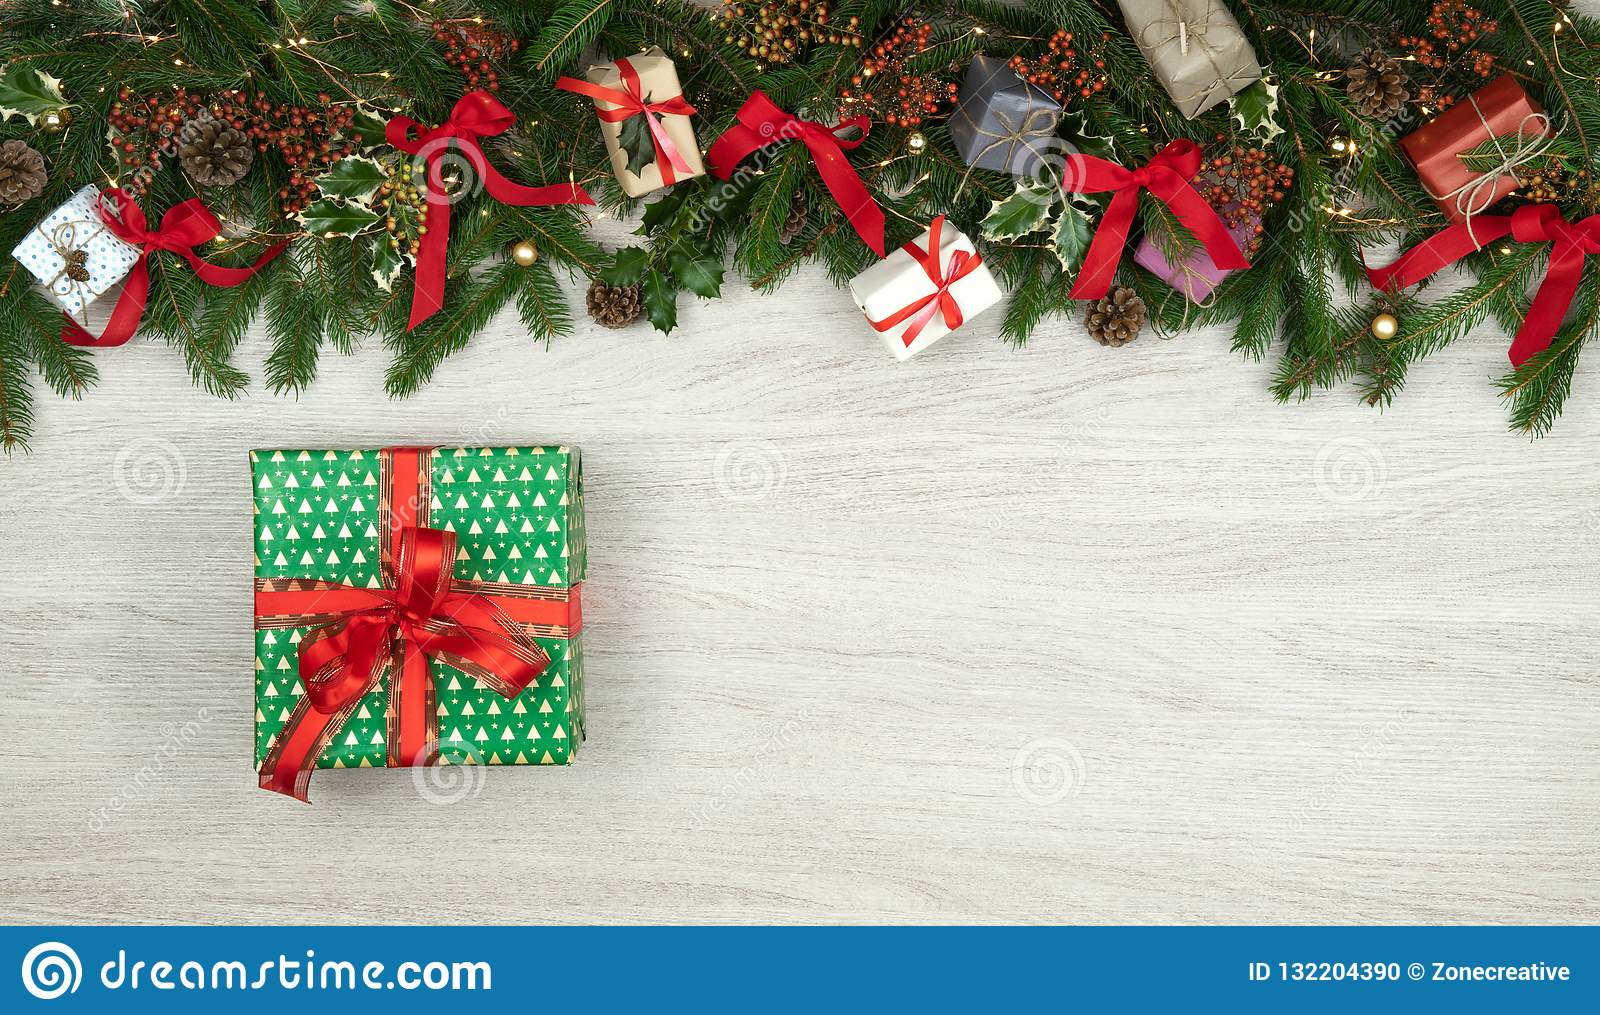 Text or logo empty copy space in vertical top view white wood with pine branches,ribbons, lights and gift present box